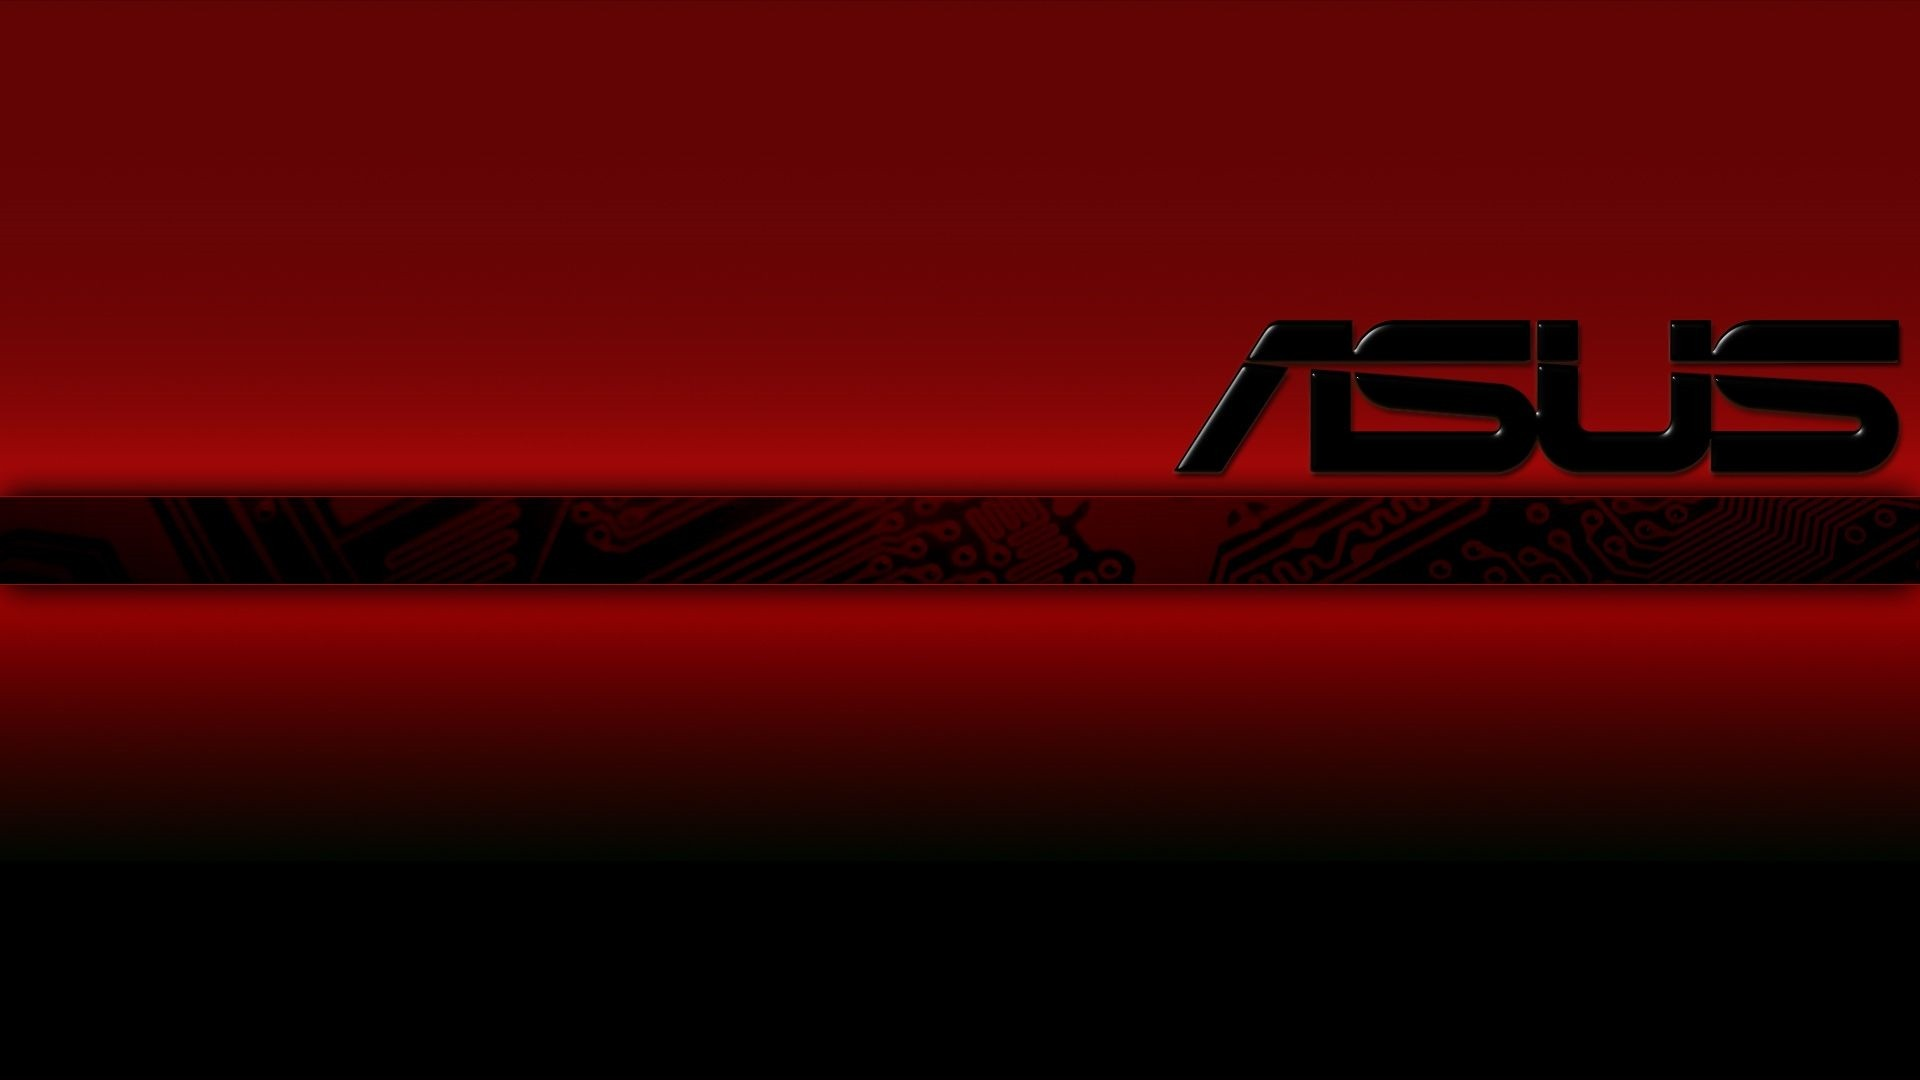 Asus Wallpaper image hd